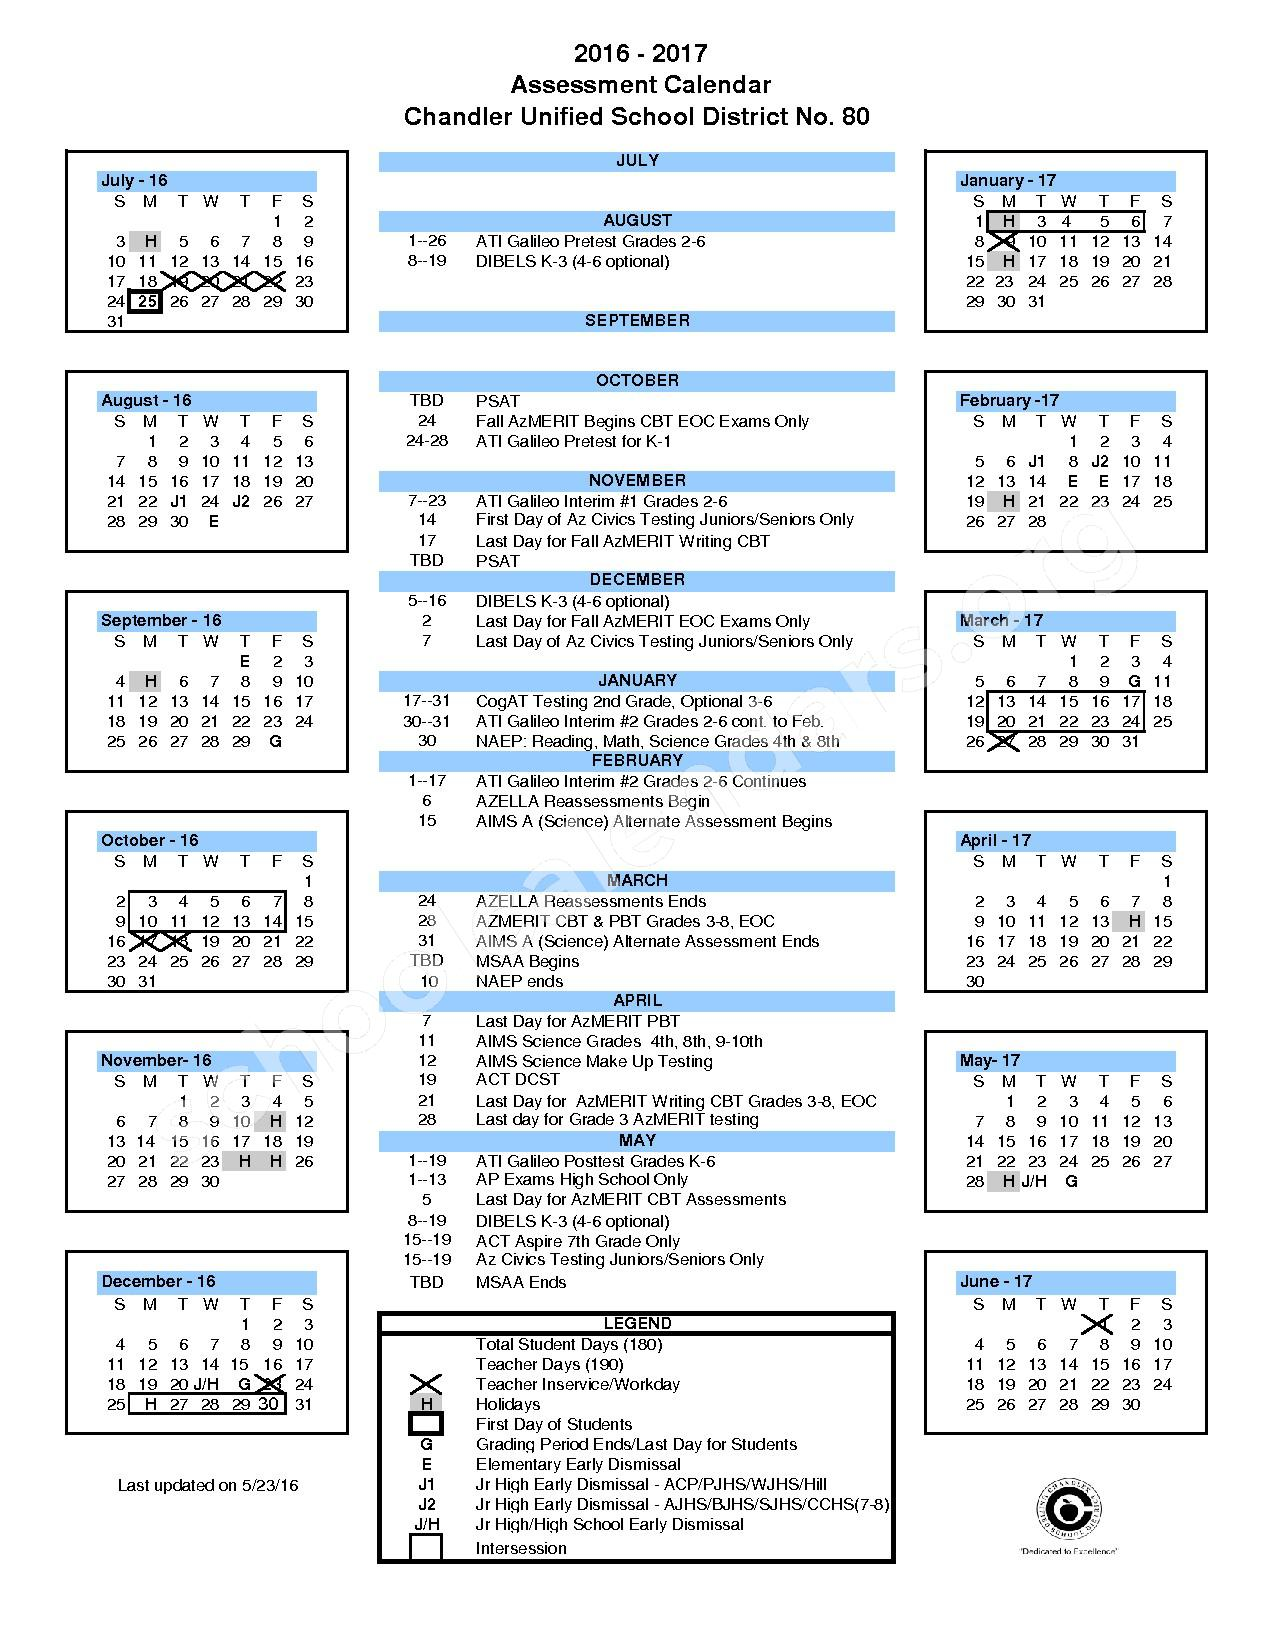 2016 - 2017 District Testing Calendar – Chandler Unified School District – page 1